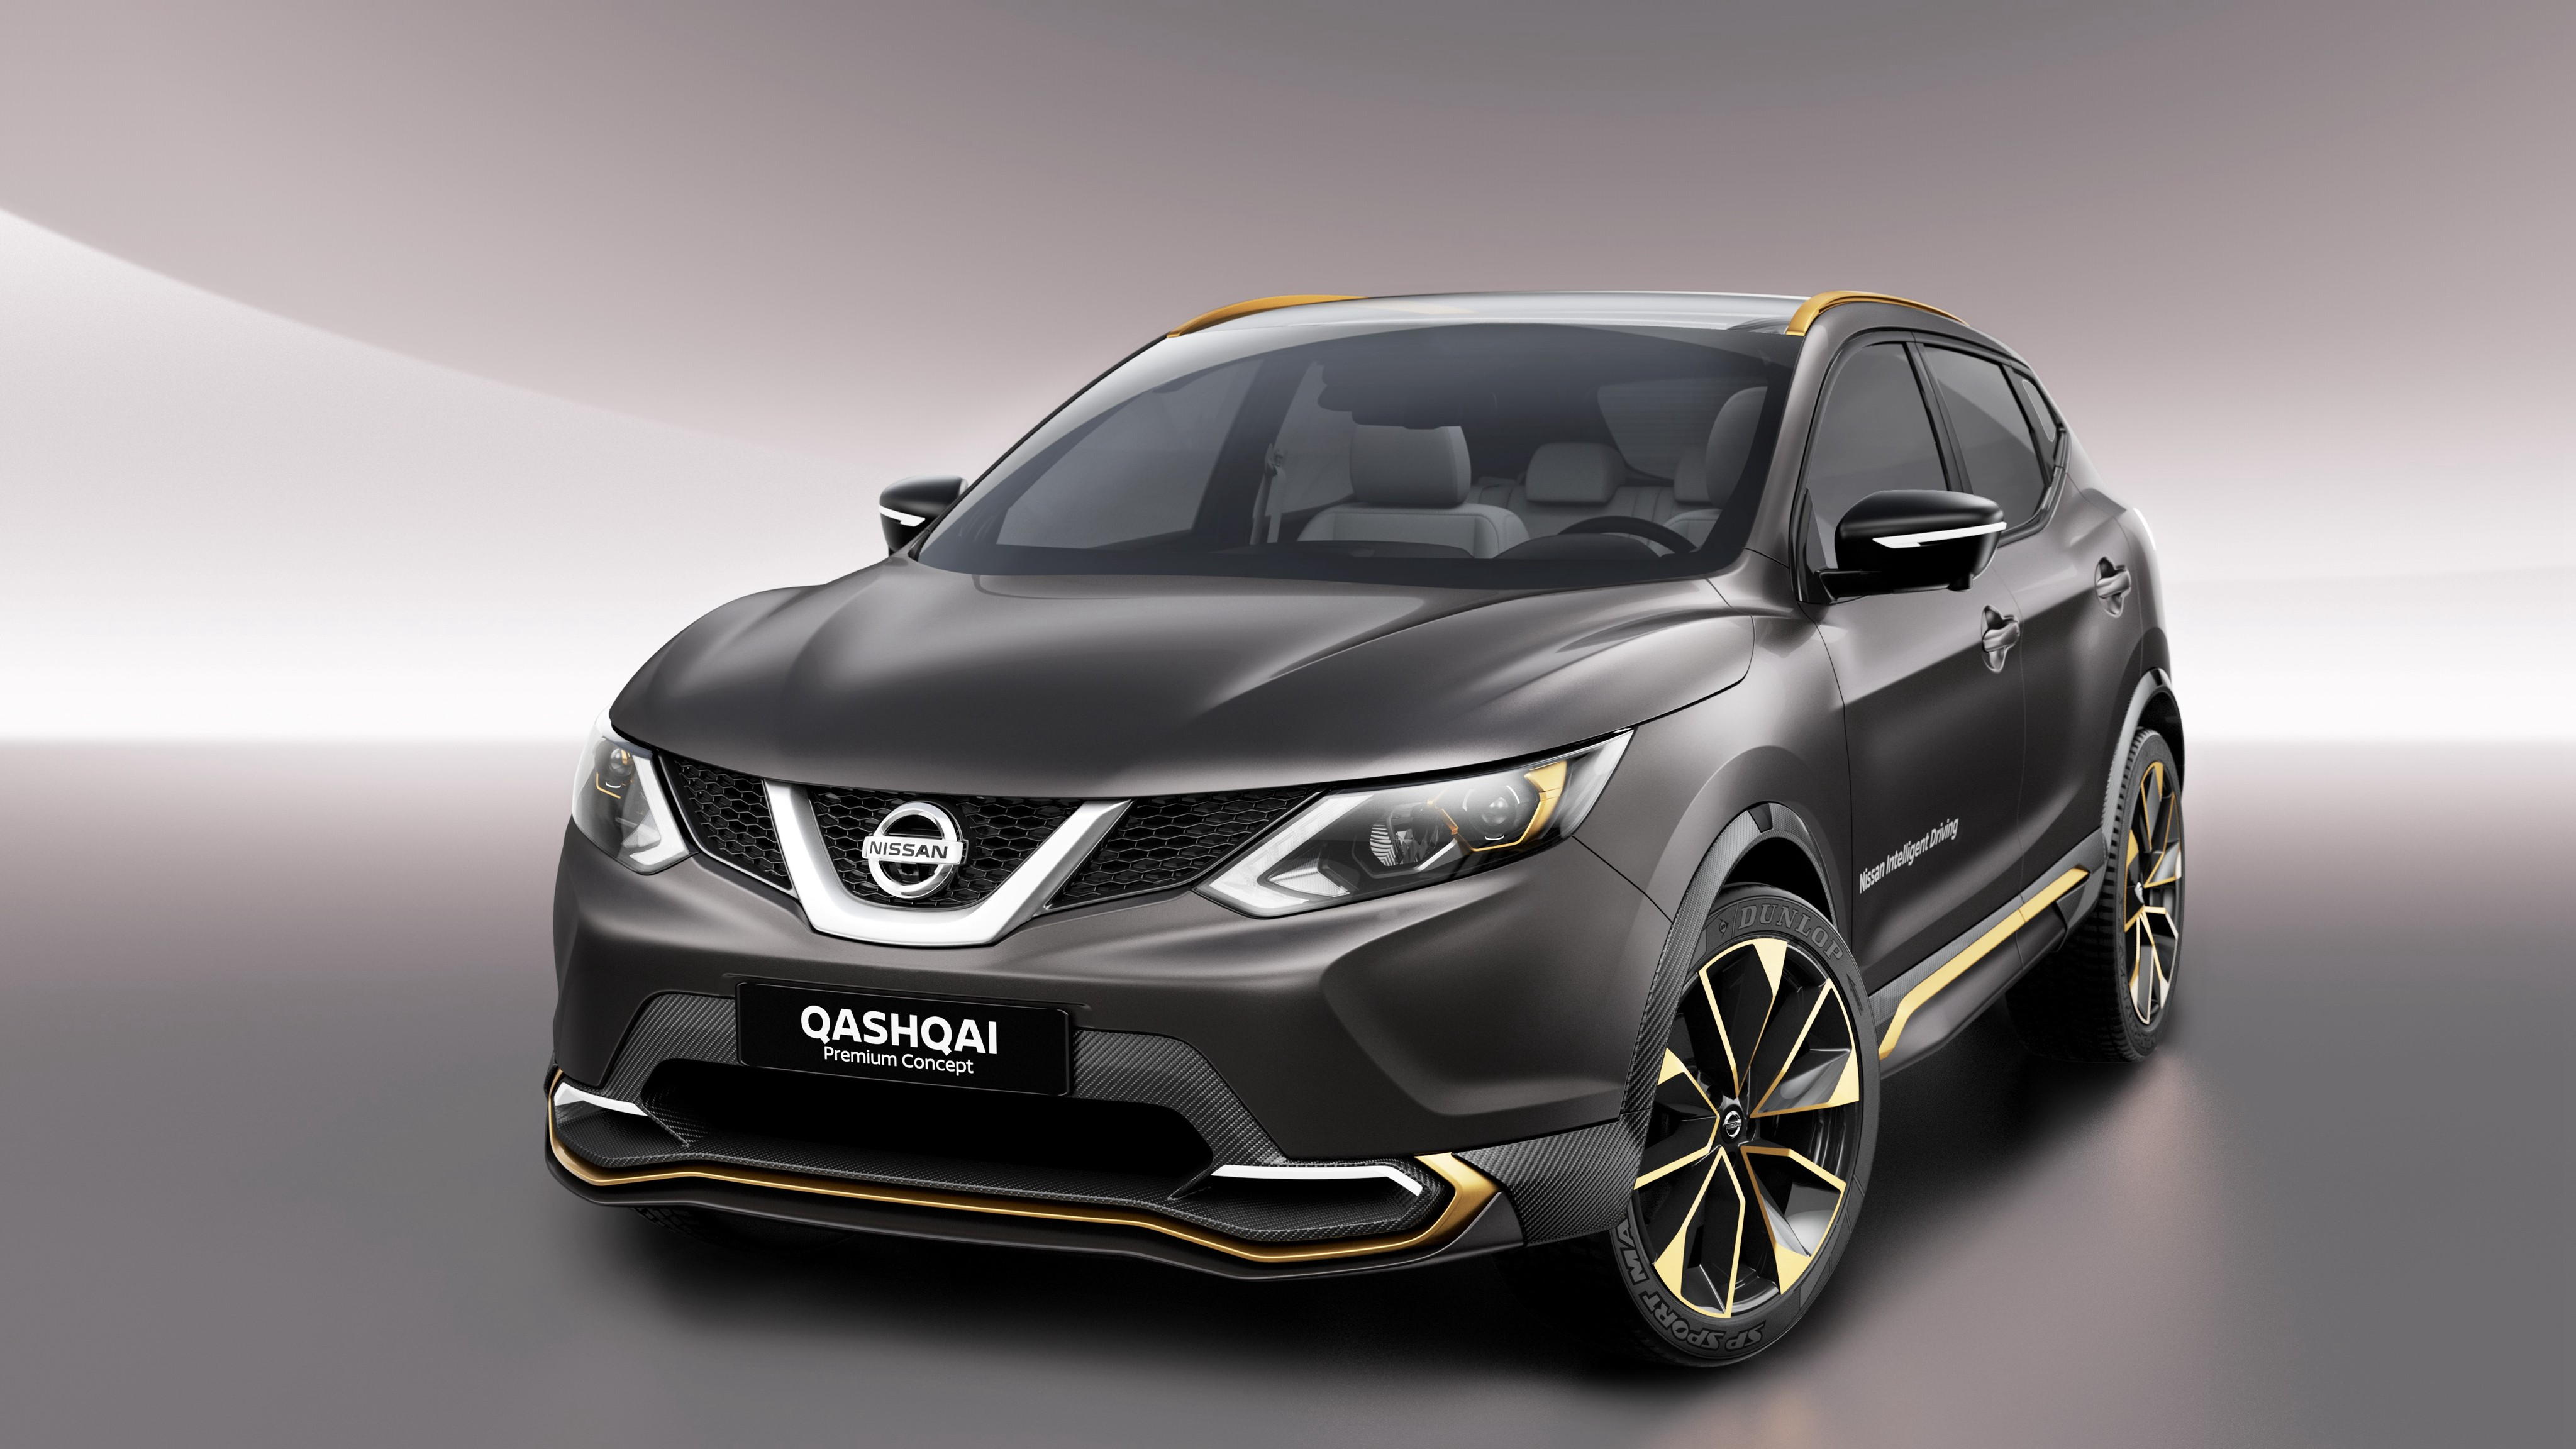 2018 Nissan Qashqai Facelift Spied For The First Time Has Concept